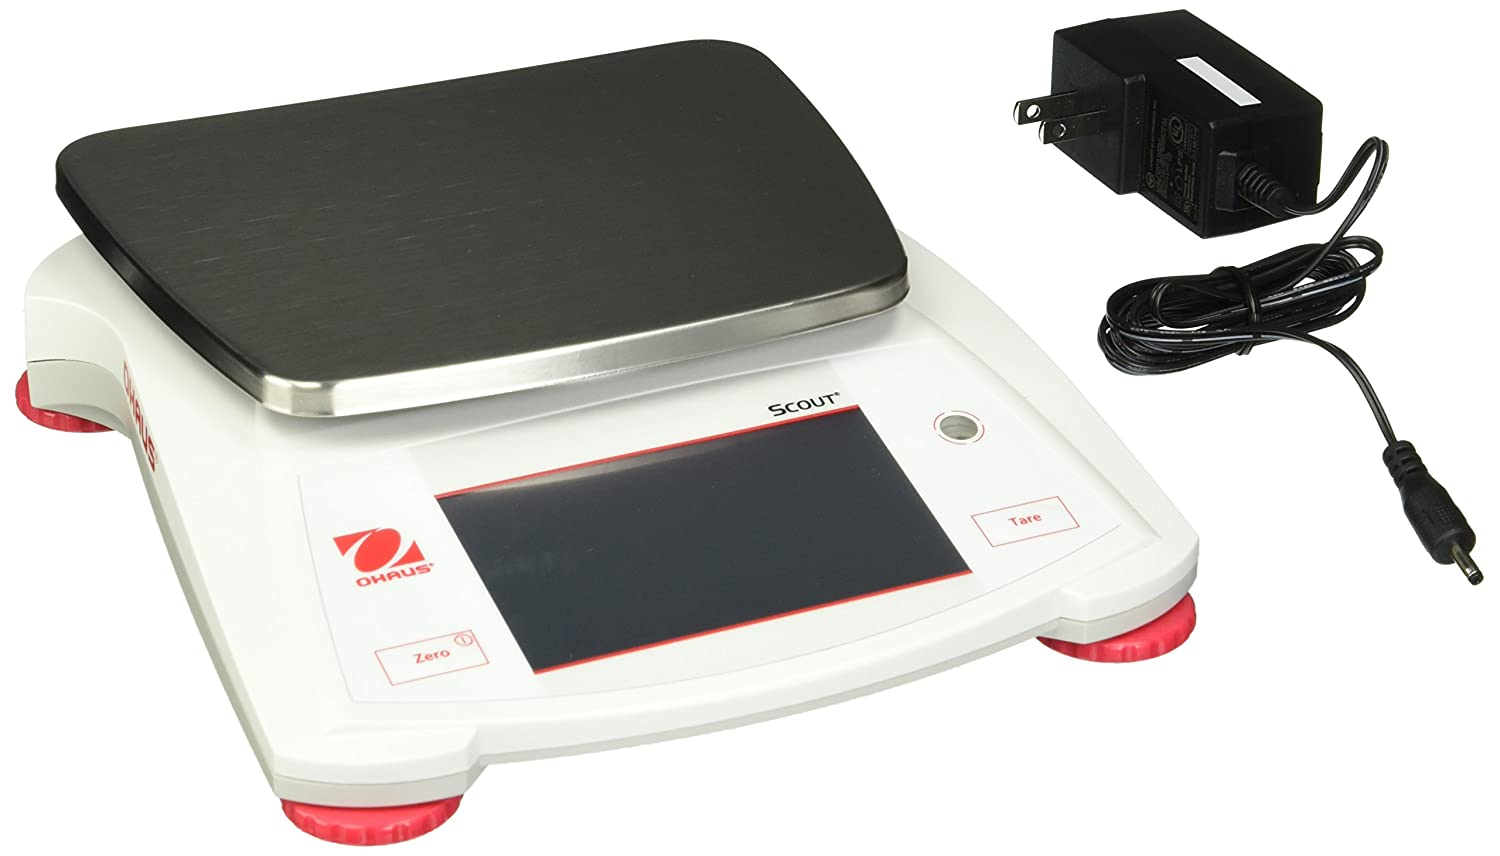 Ohaus Superior STX6201 Max 48% OFF Scout Portable Balance Touchscre 6200G 0.1g x with